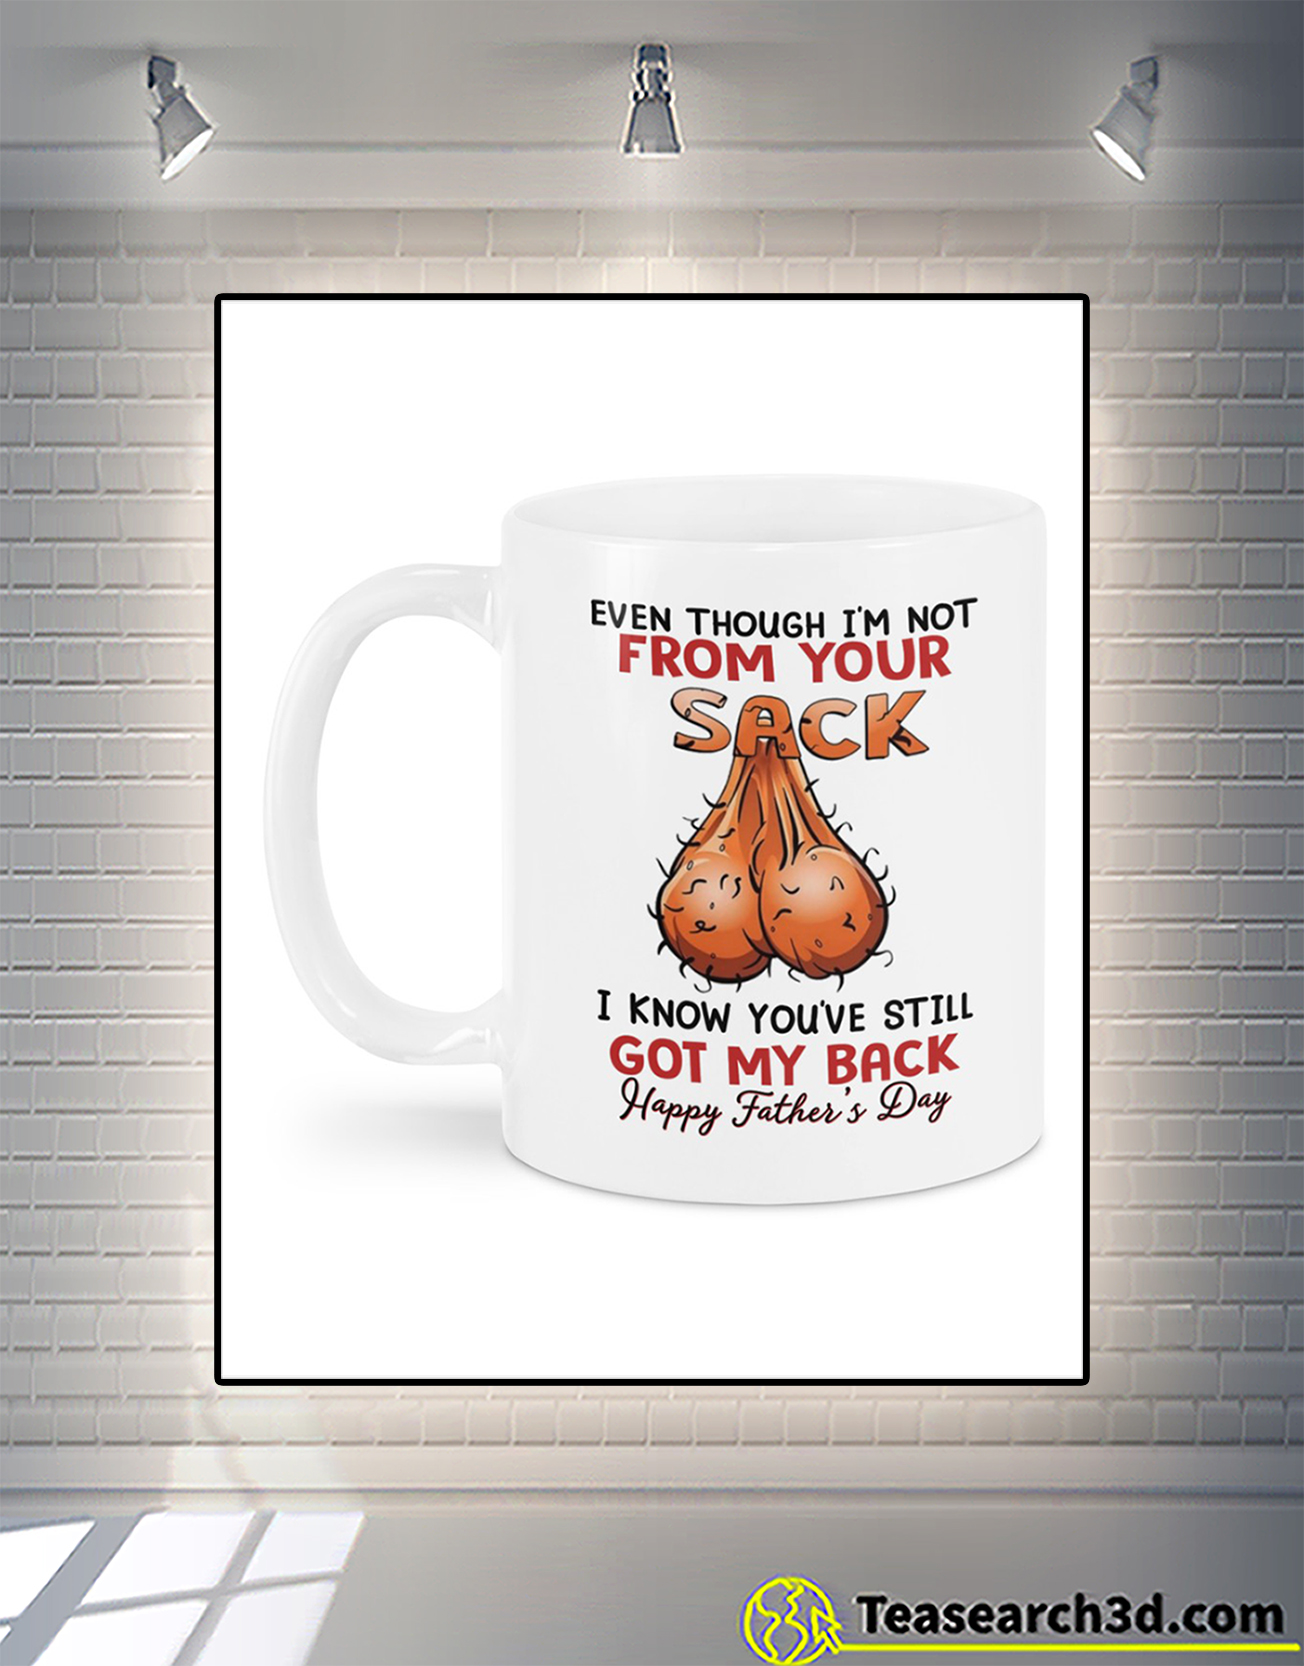 Even though I'm not from your sack mug 1